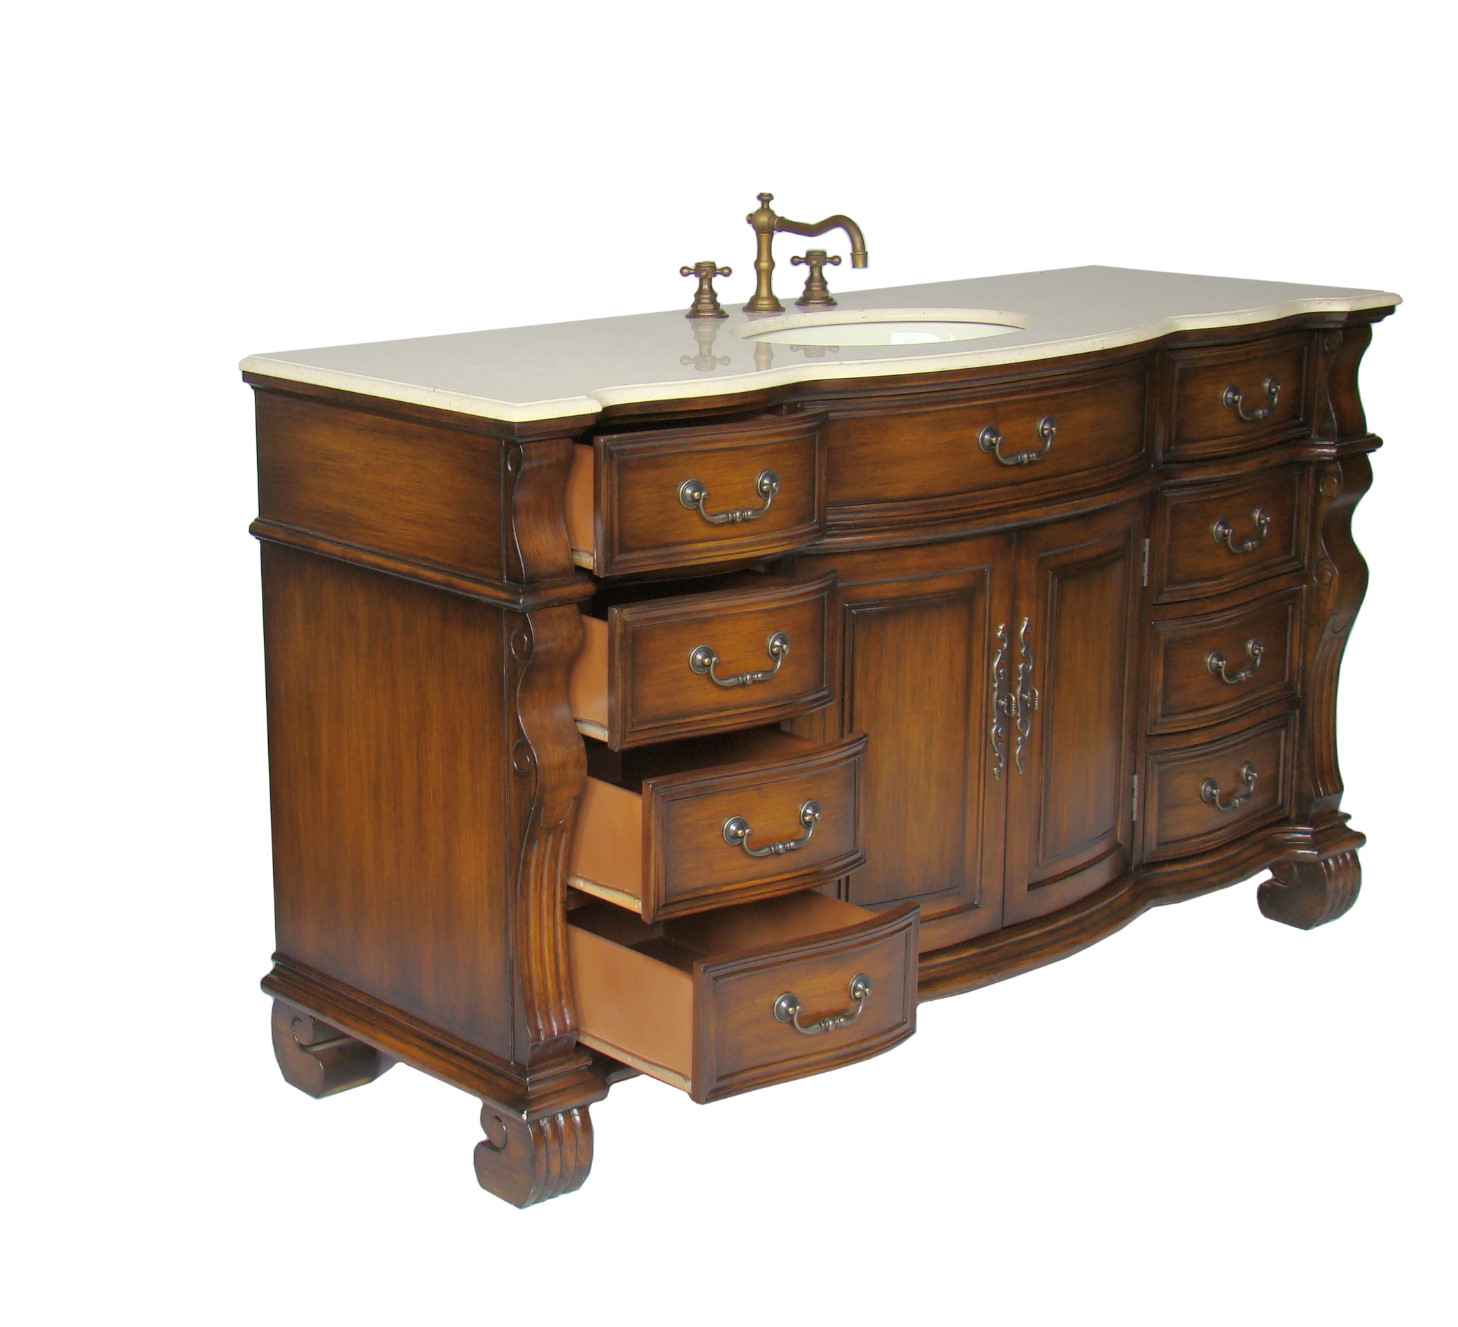 Perfect Bathroom Vanity Single Sink 60 Inch Wc 1515 60 Sgl W 1 IzyuwO